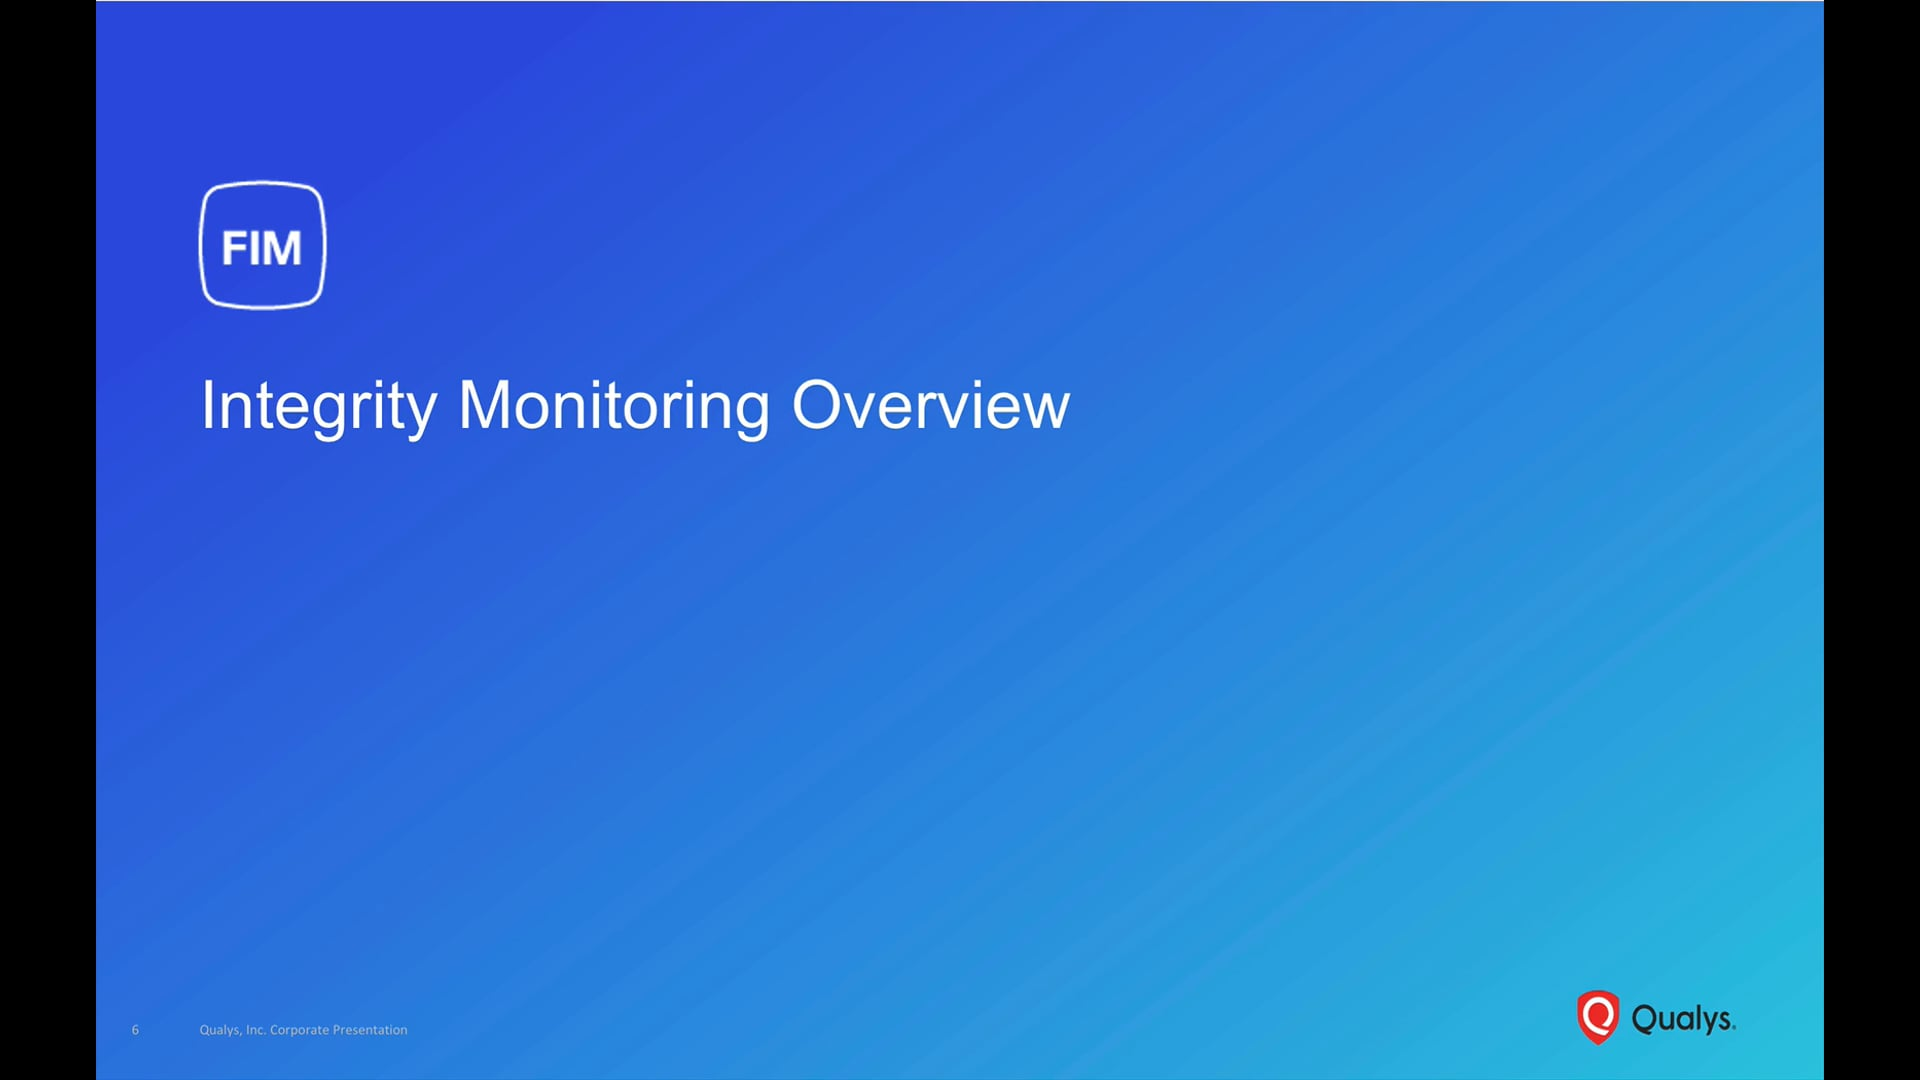 Integrity Monitoring Overview